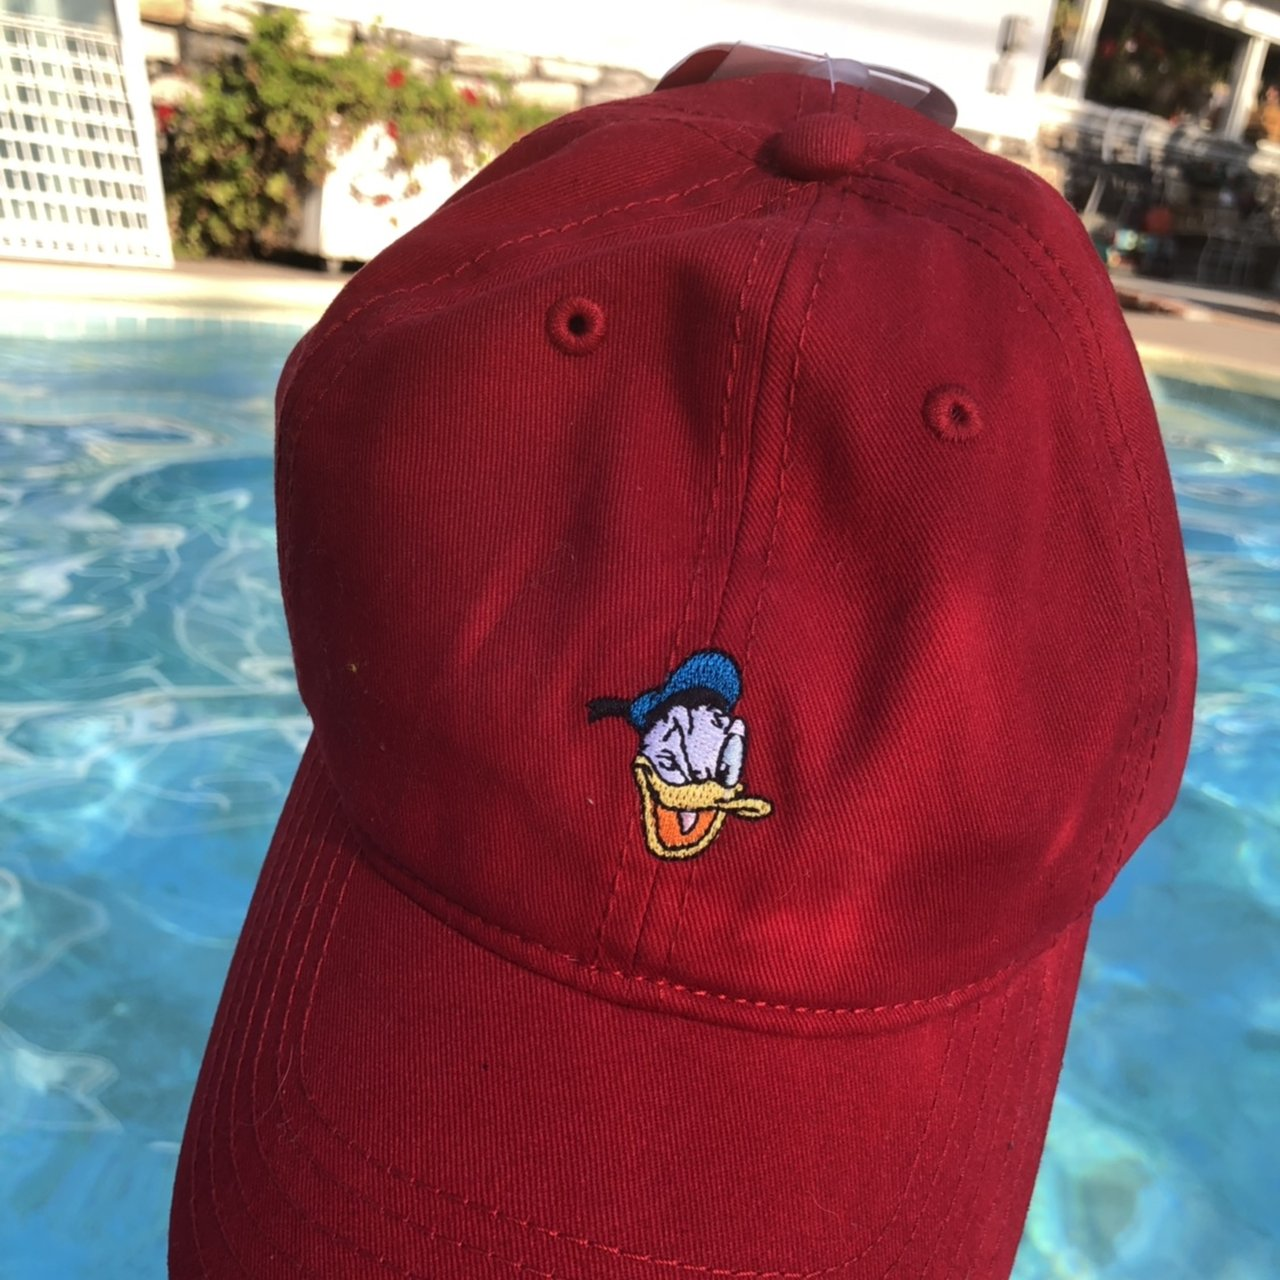 c701fd7e569 Disney Donald Duck Hat in fresh Blood Red. Adjustable. w  - Depop